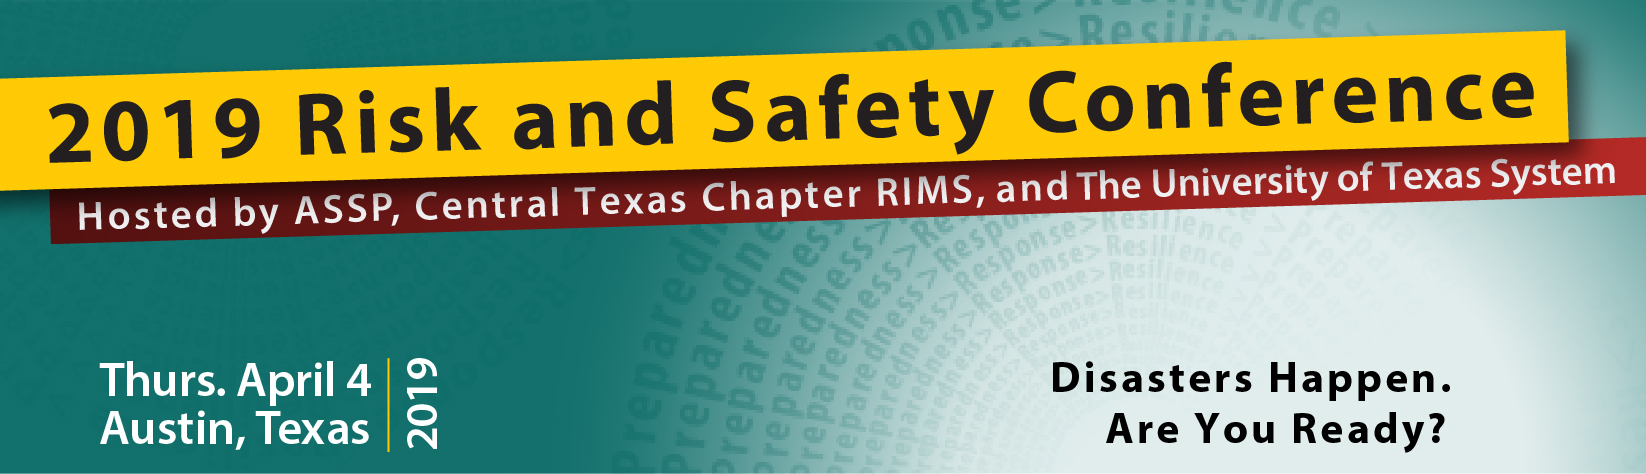 2019 Risk & Safety Conference